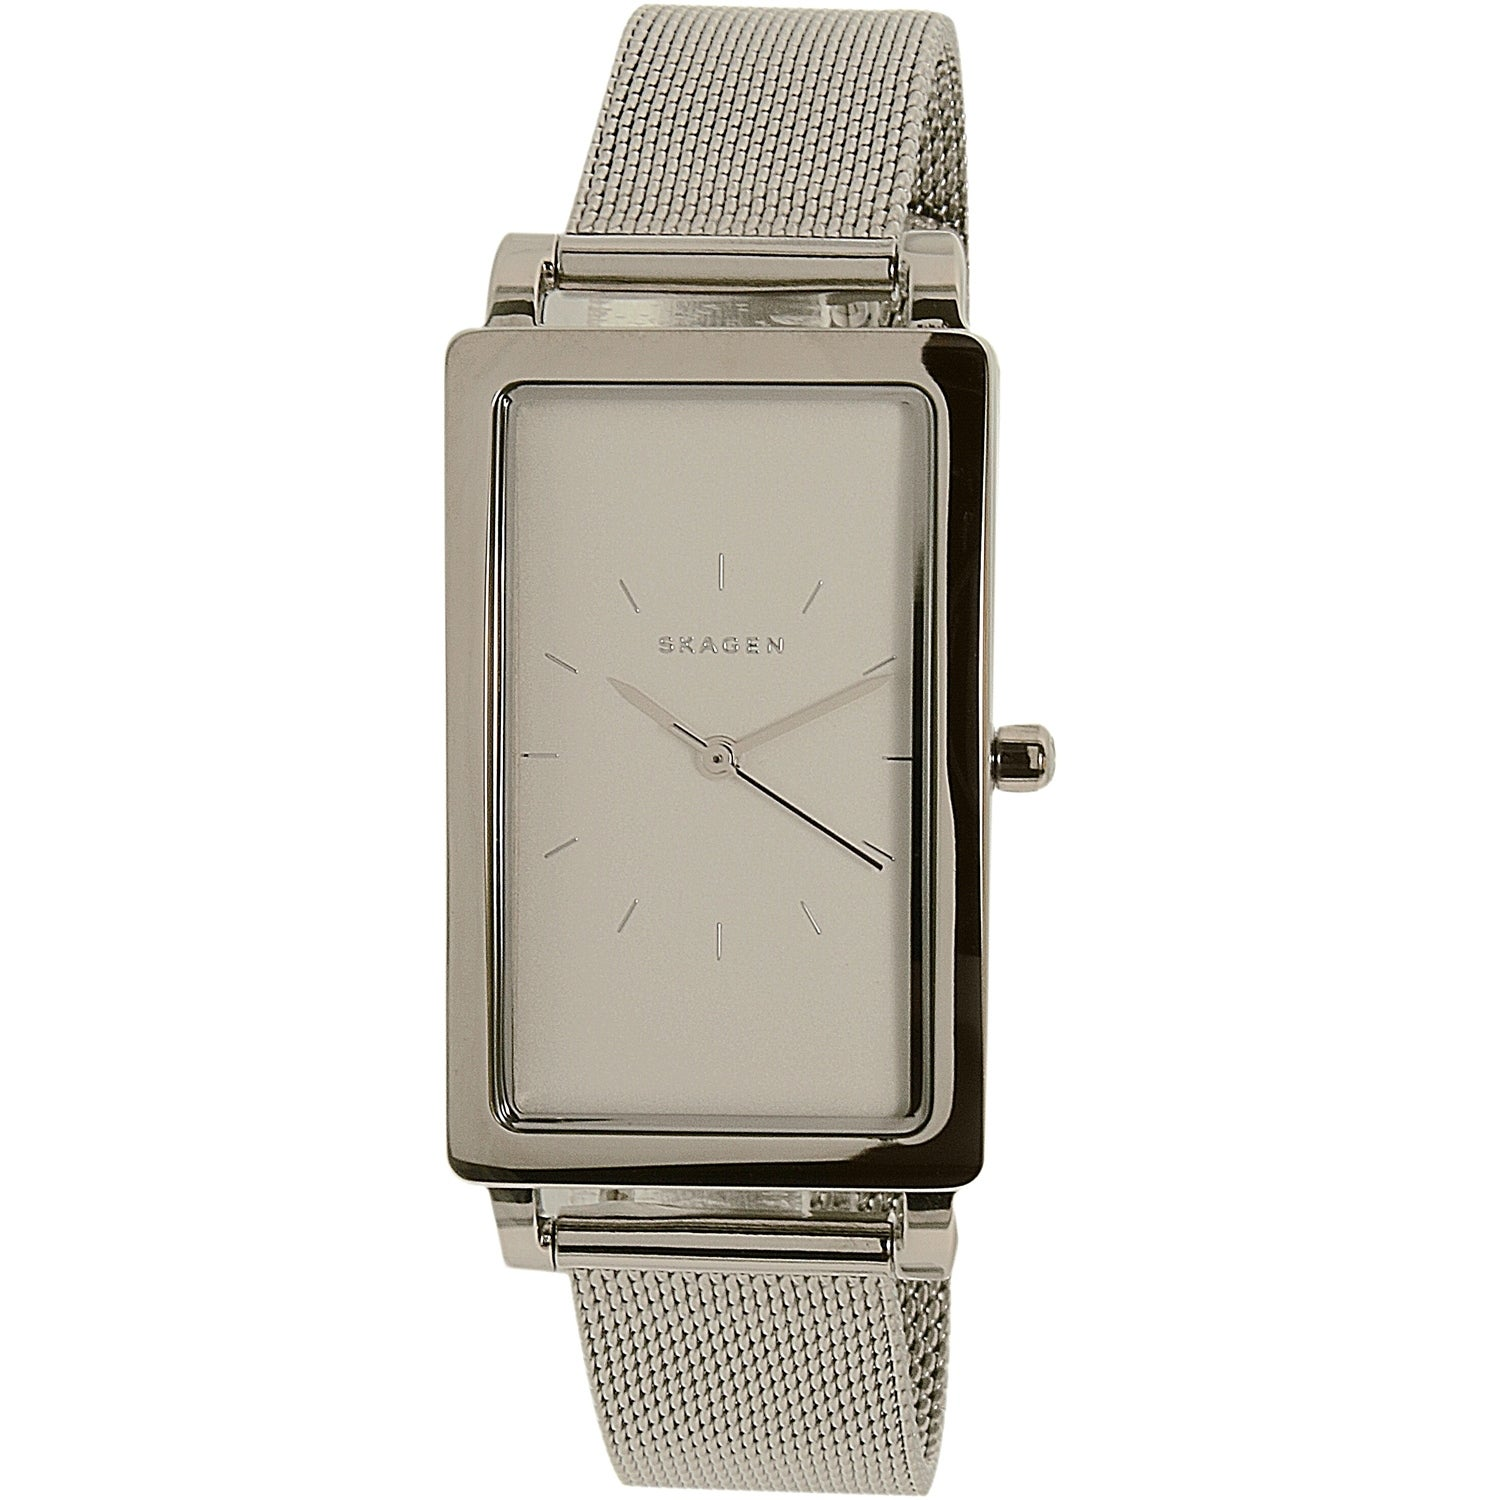 shop watch of mesh rack watches product hagen strap nordstrom skagen mm image